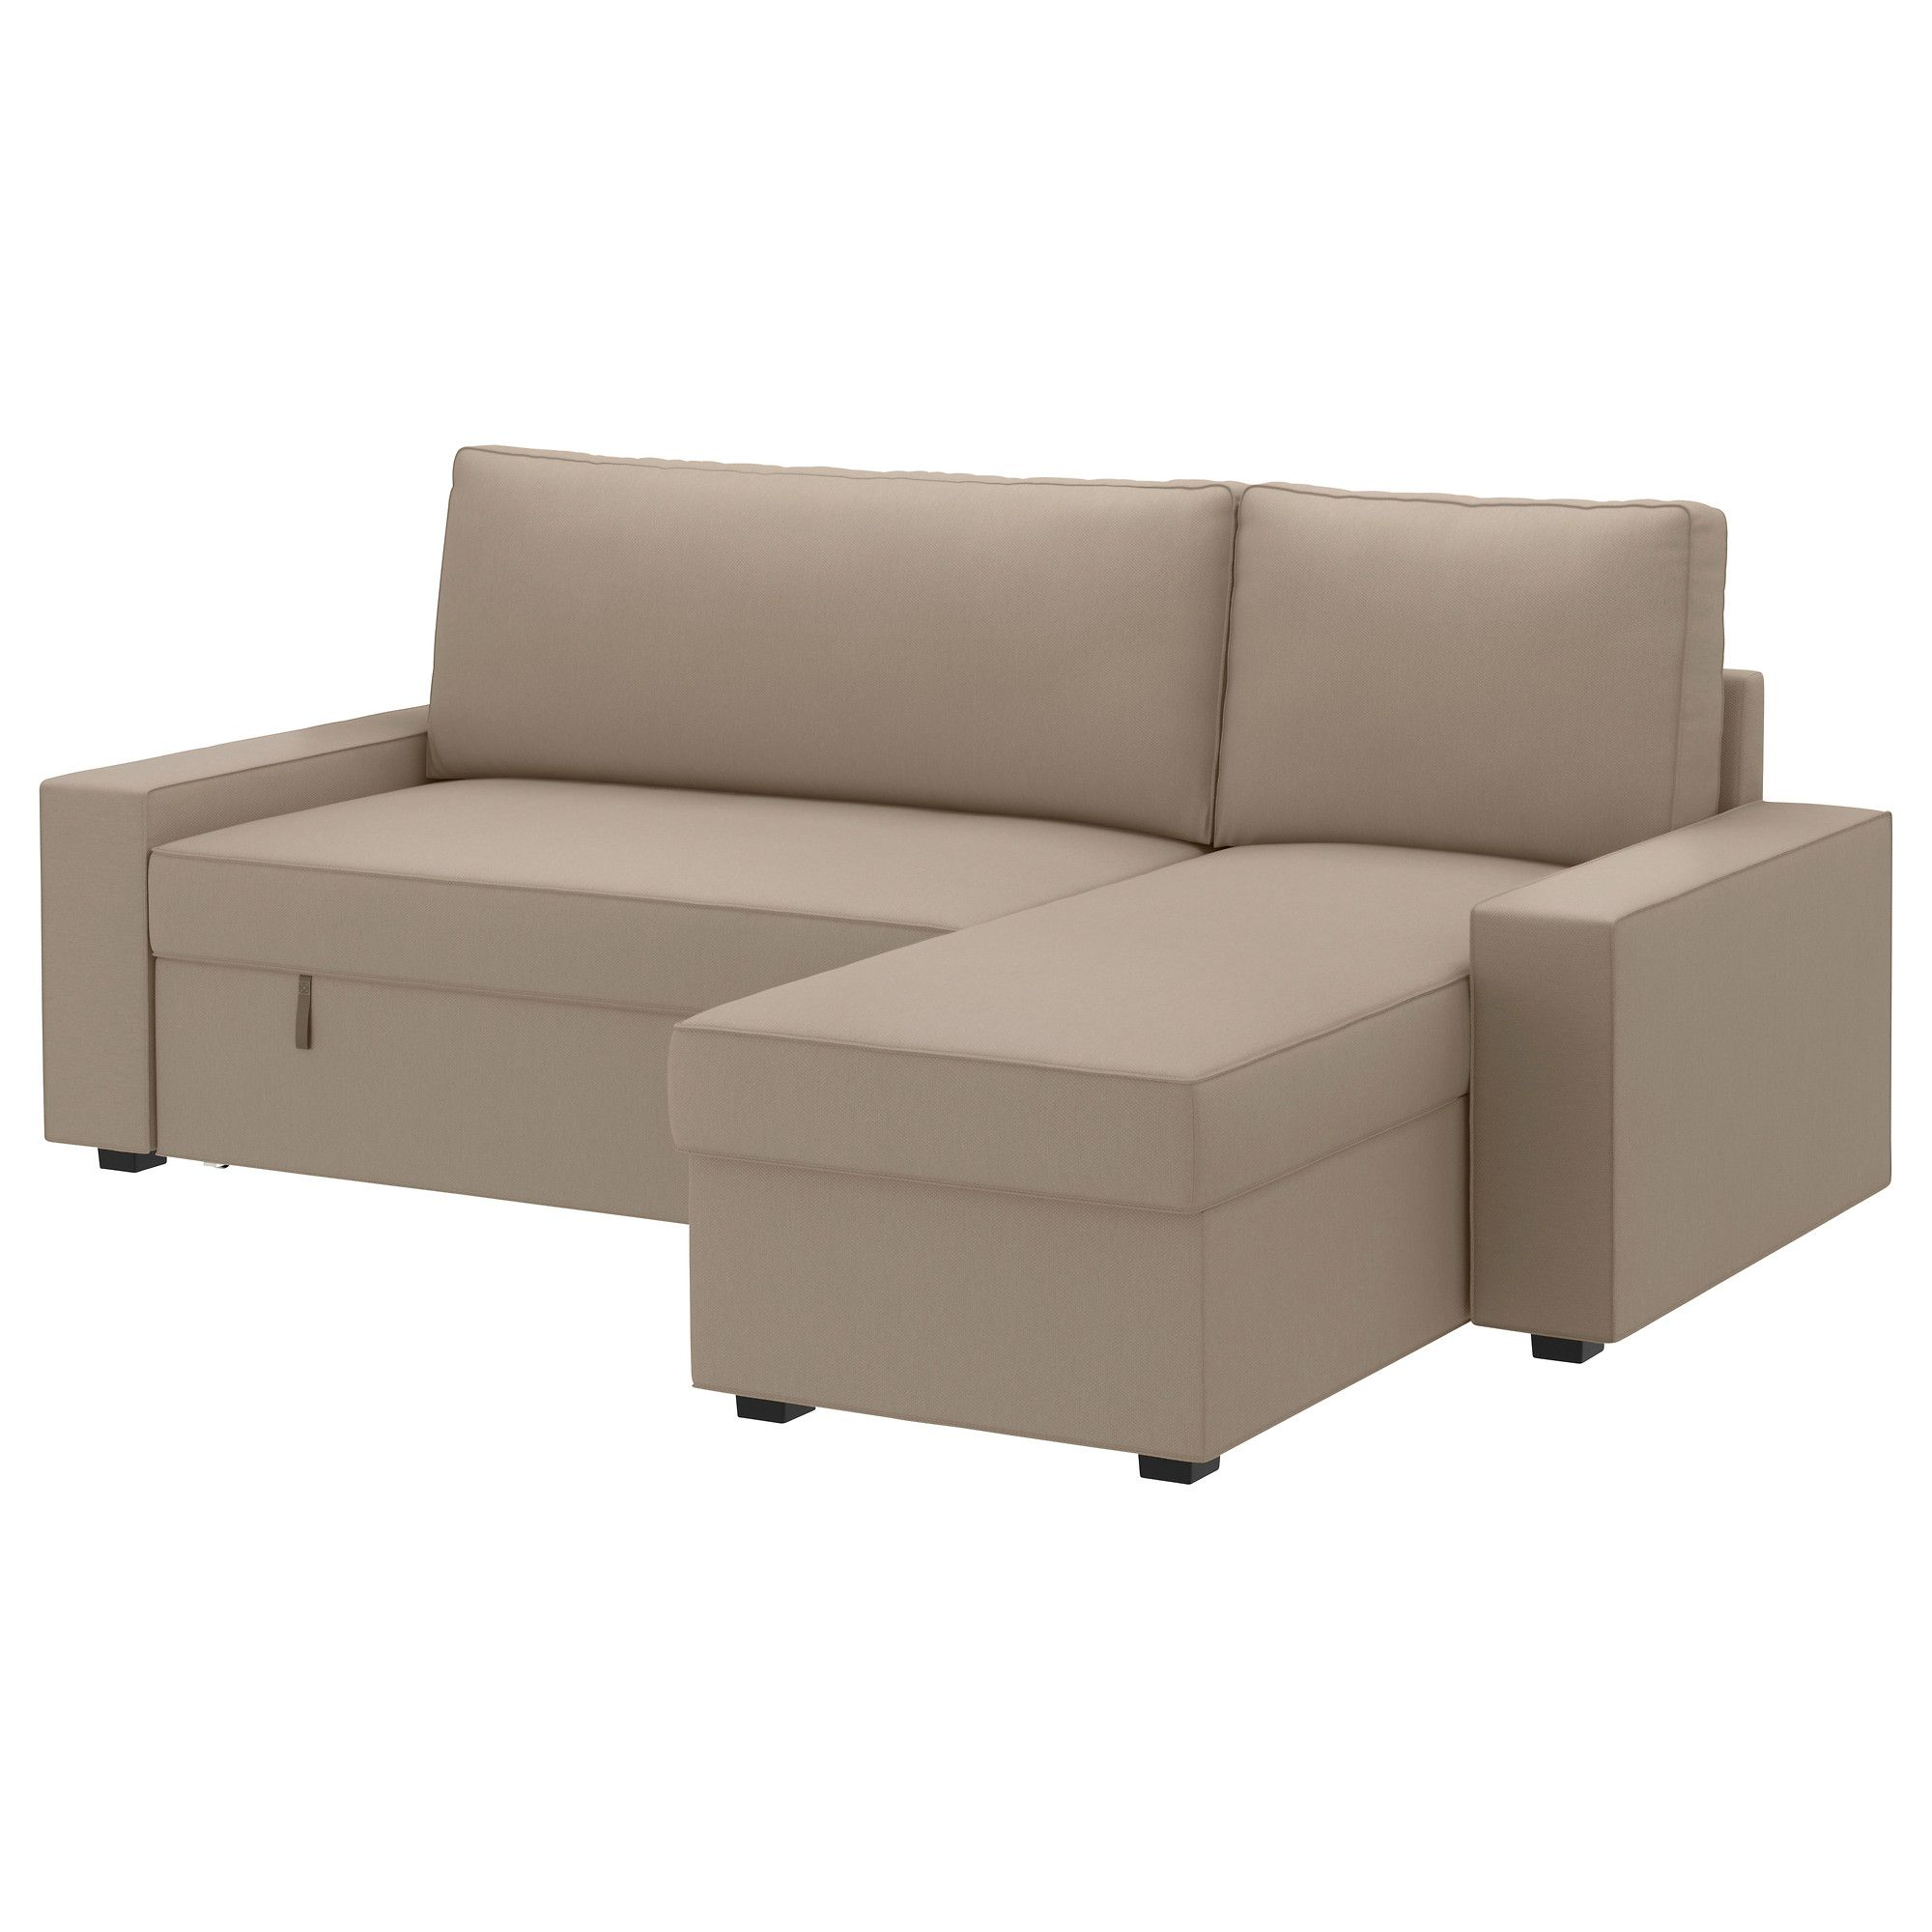 Vilasund Cover Sofa-bed With Chaise Longue - Dansbo Beige - Ikea ... Beige Wei Ikea